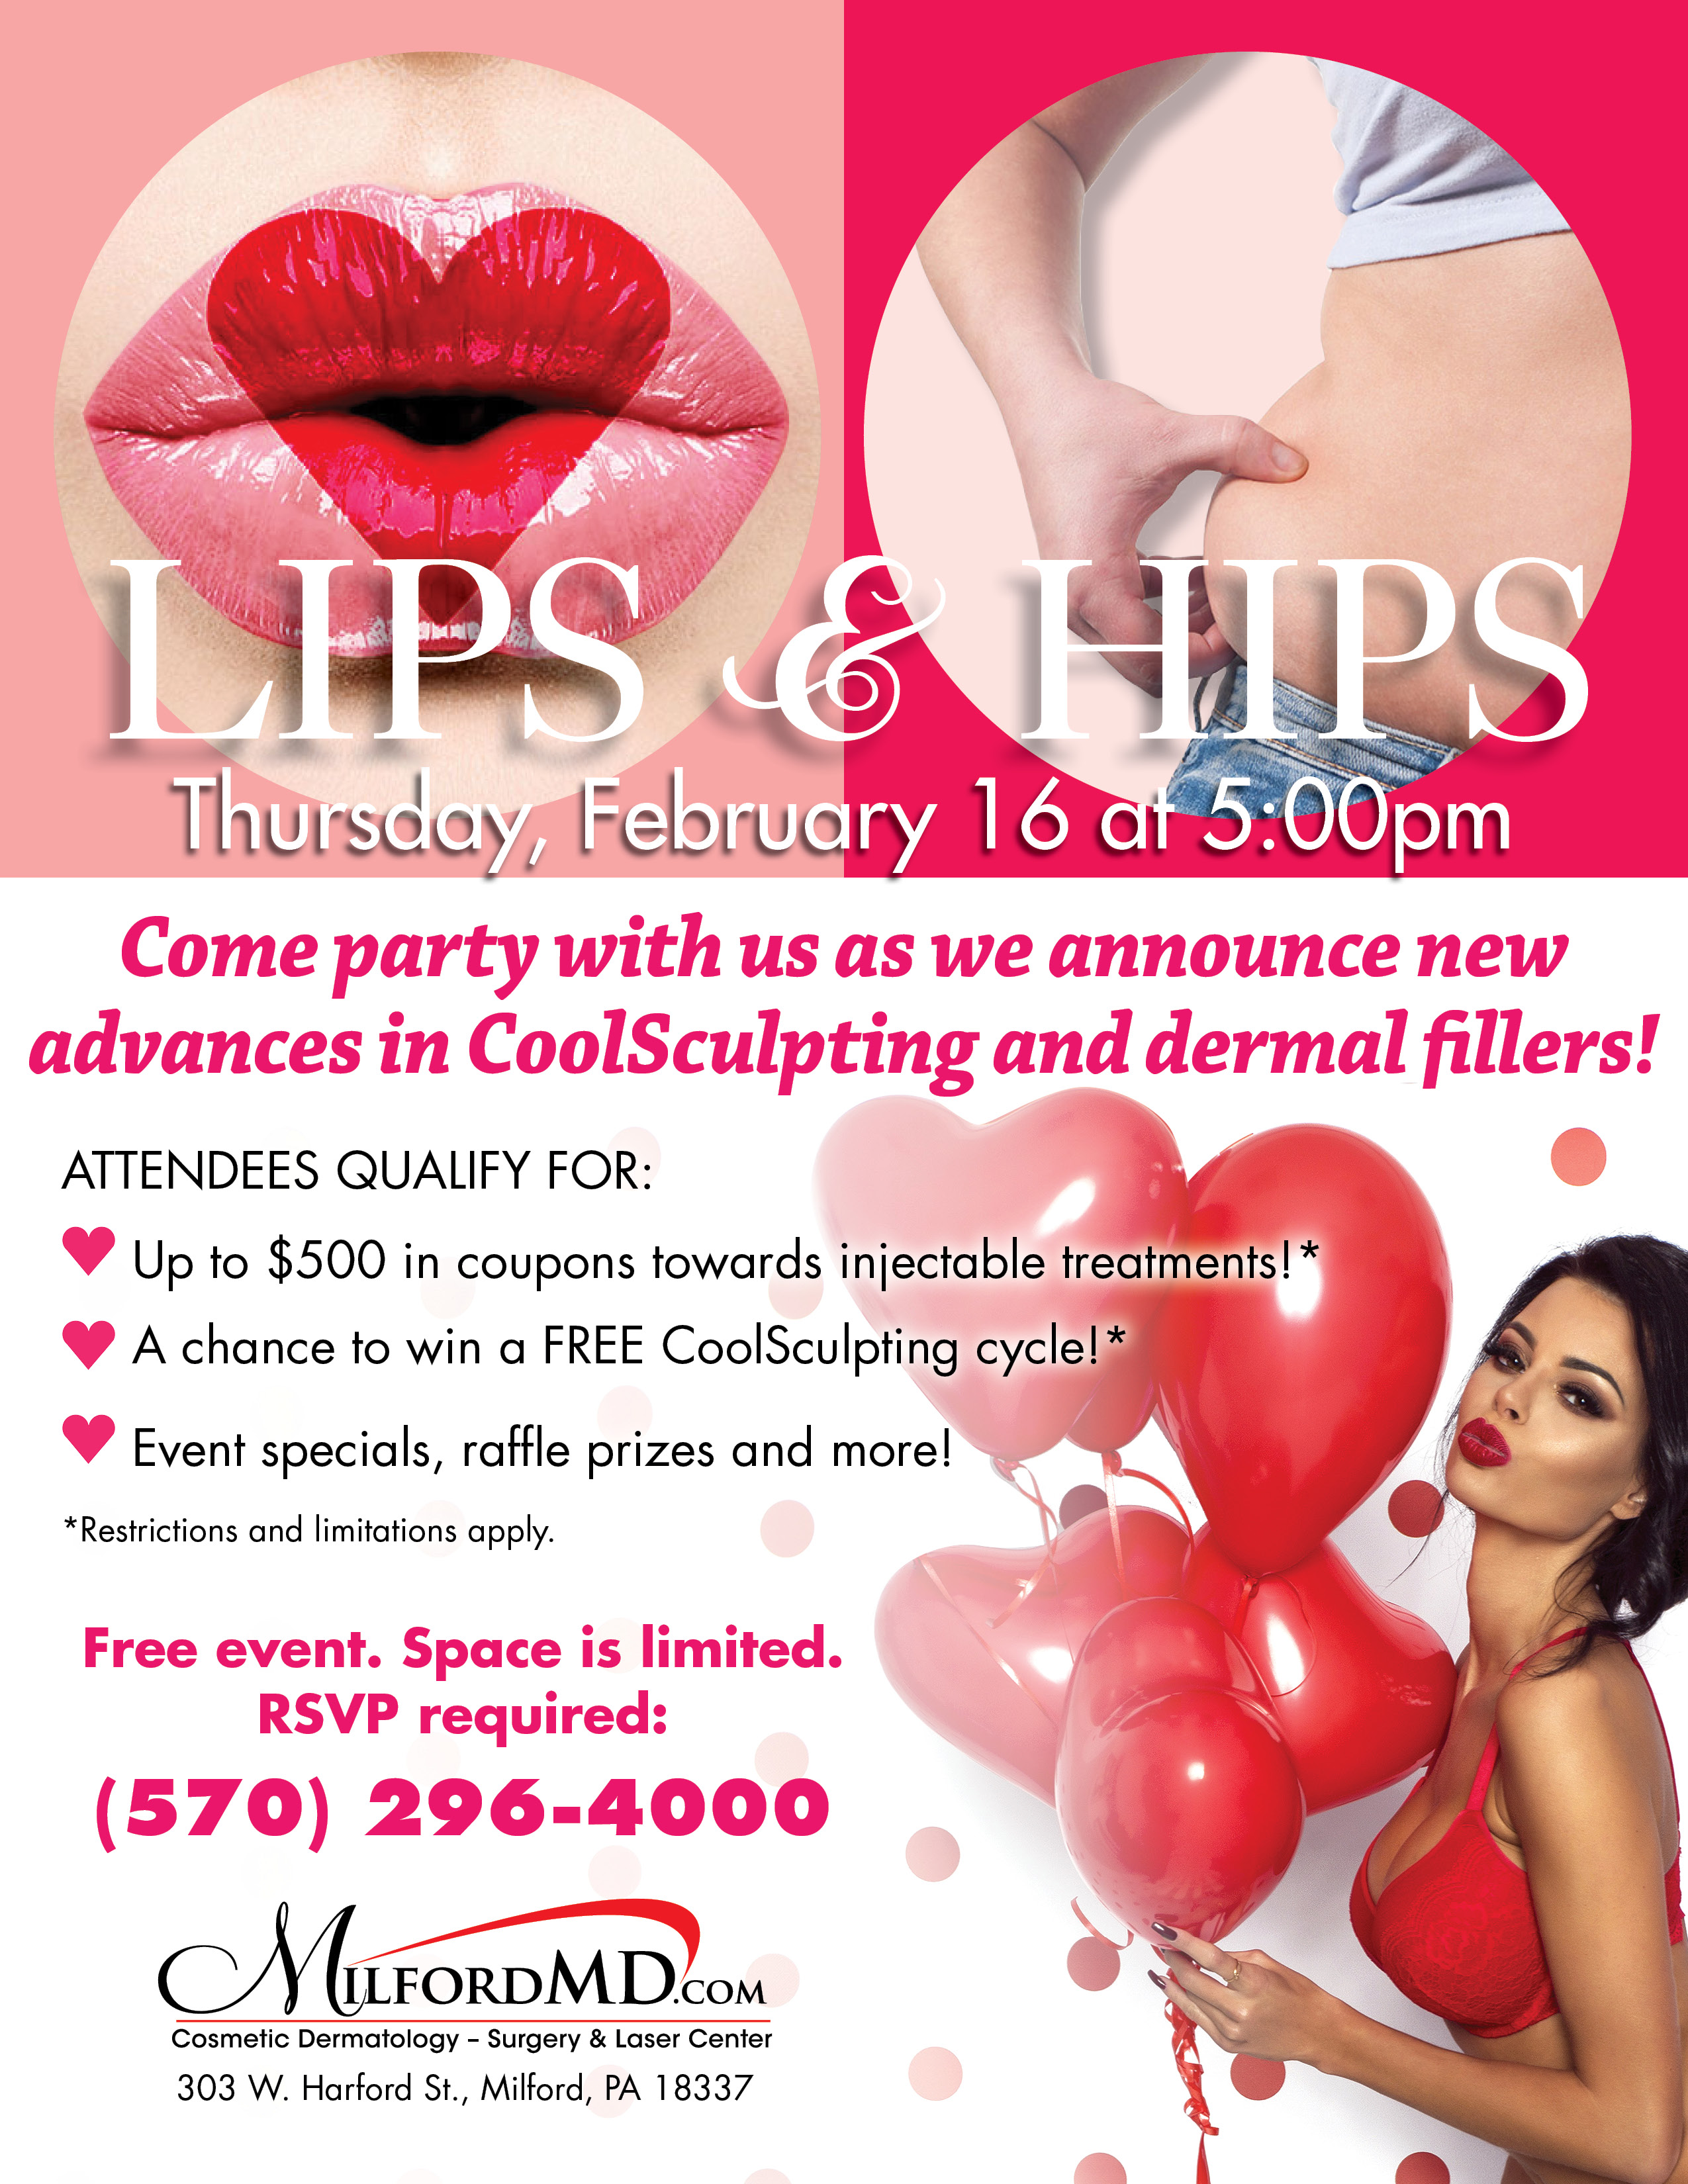 The Public Is Invited To Milfordmd's Lips & Hips Event On